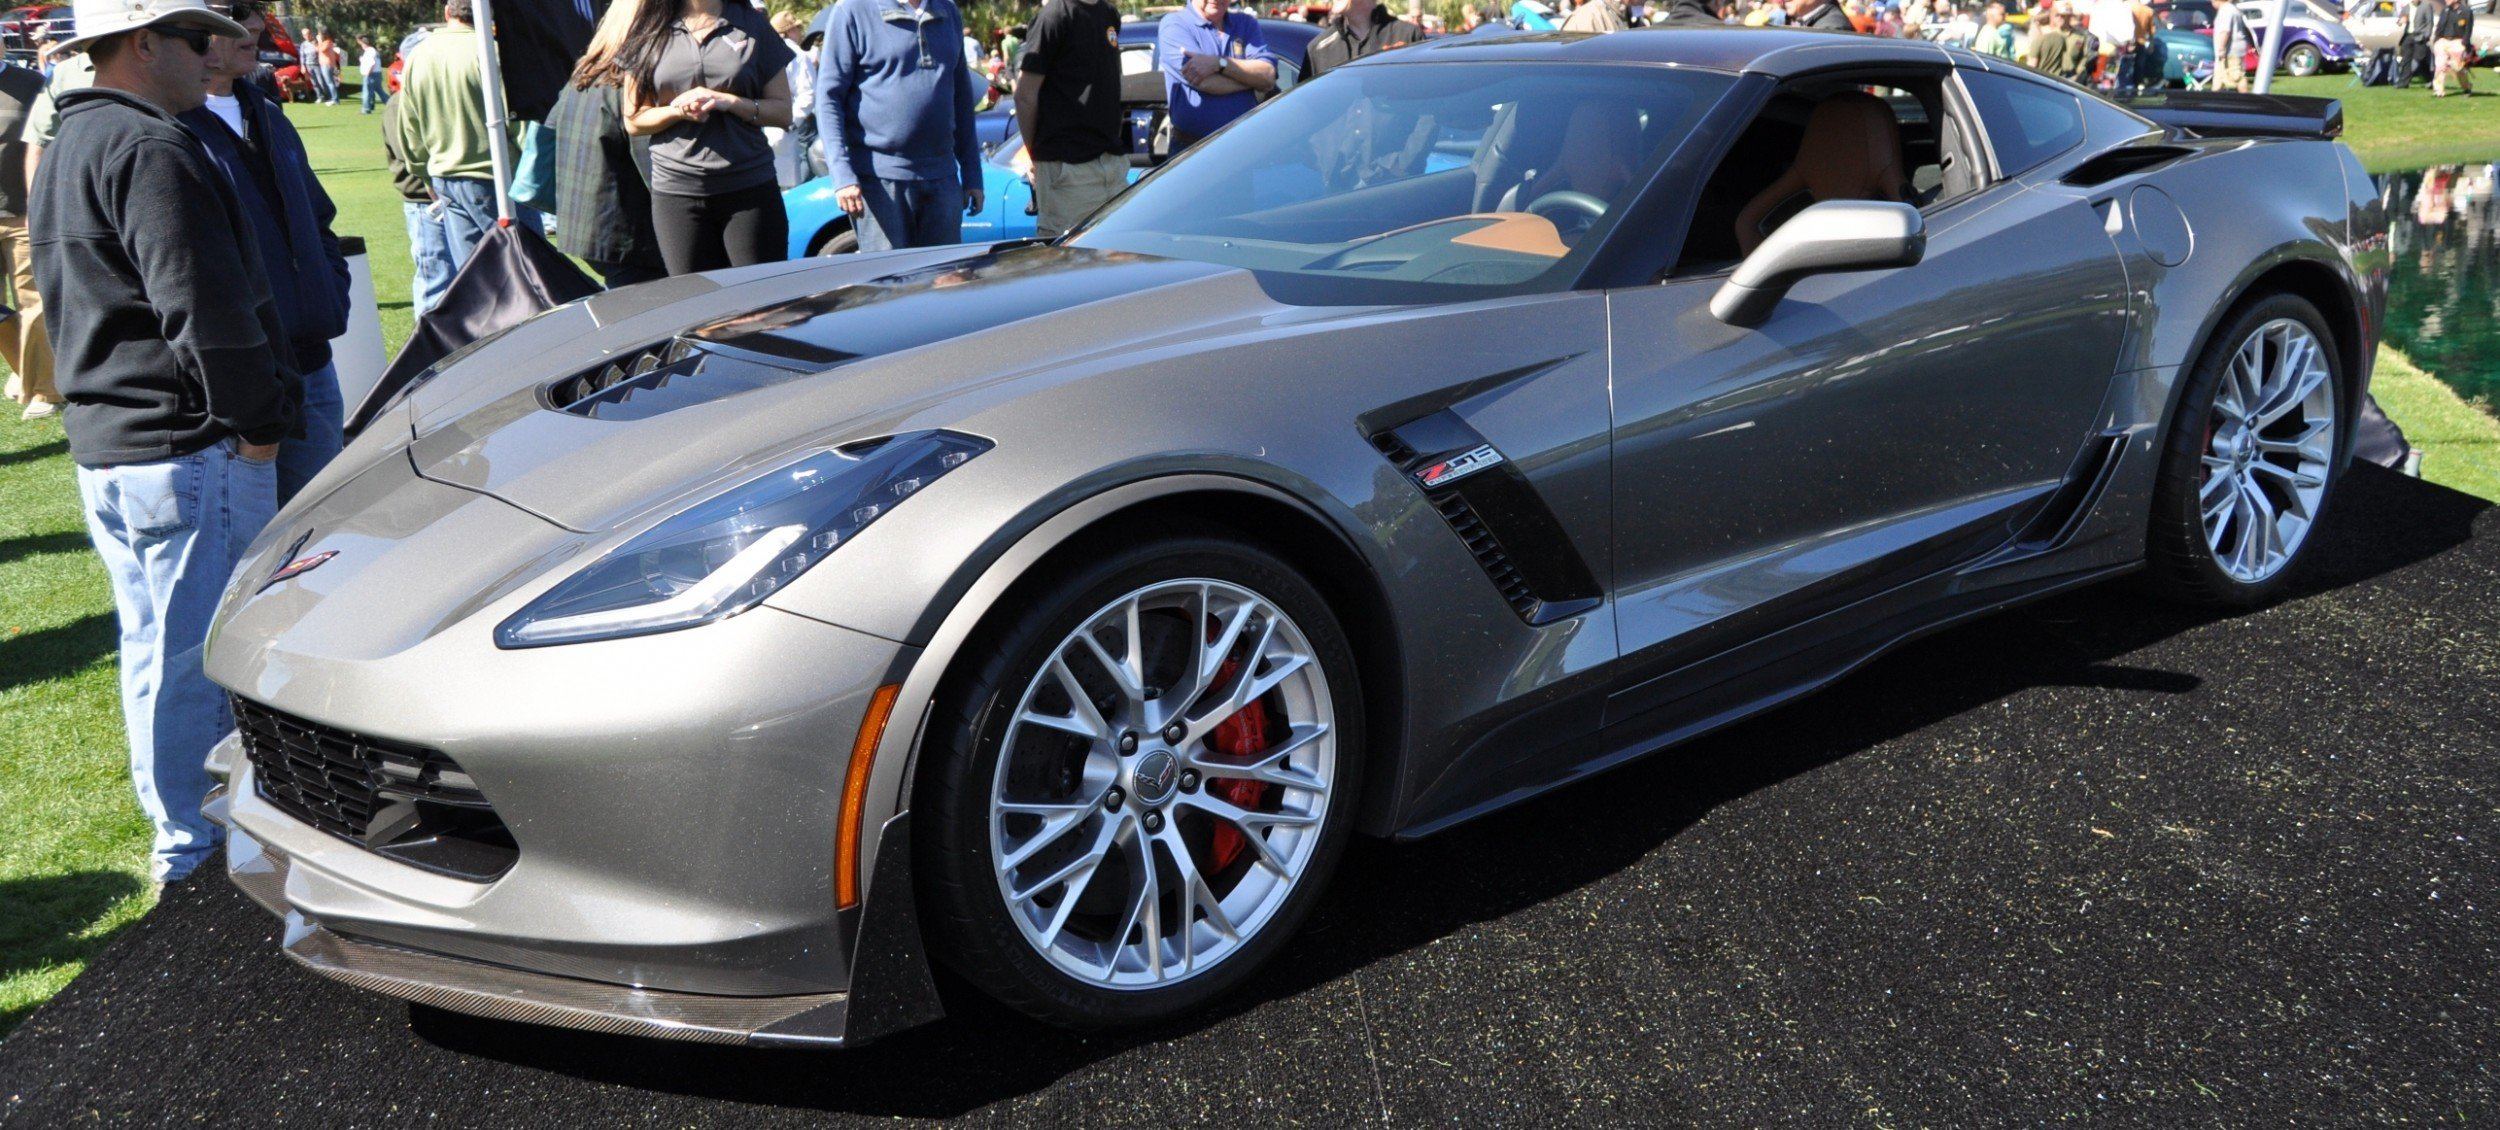 2015 Z06 -- First Outdoor Showing -- Forthcoming Chevrolet Corvette Track Monster Holds Still For 26 High-Res Photos 26